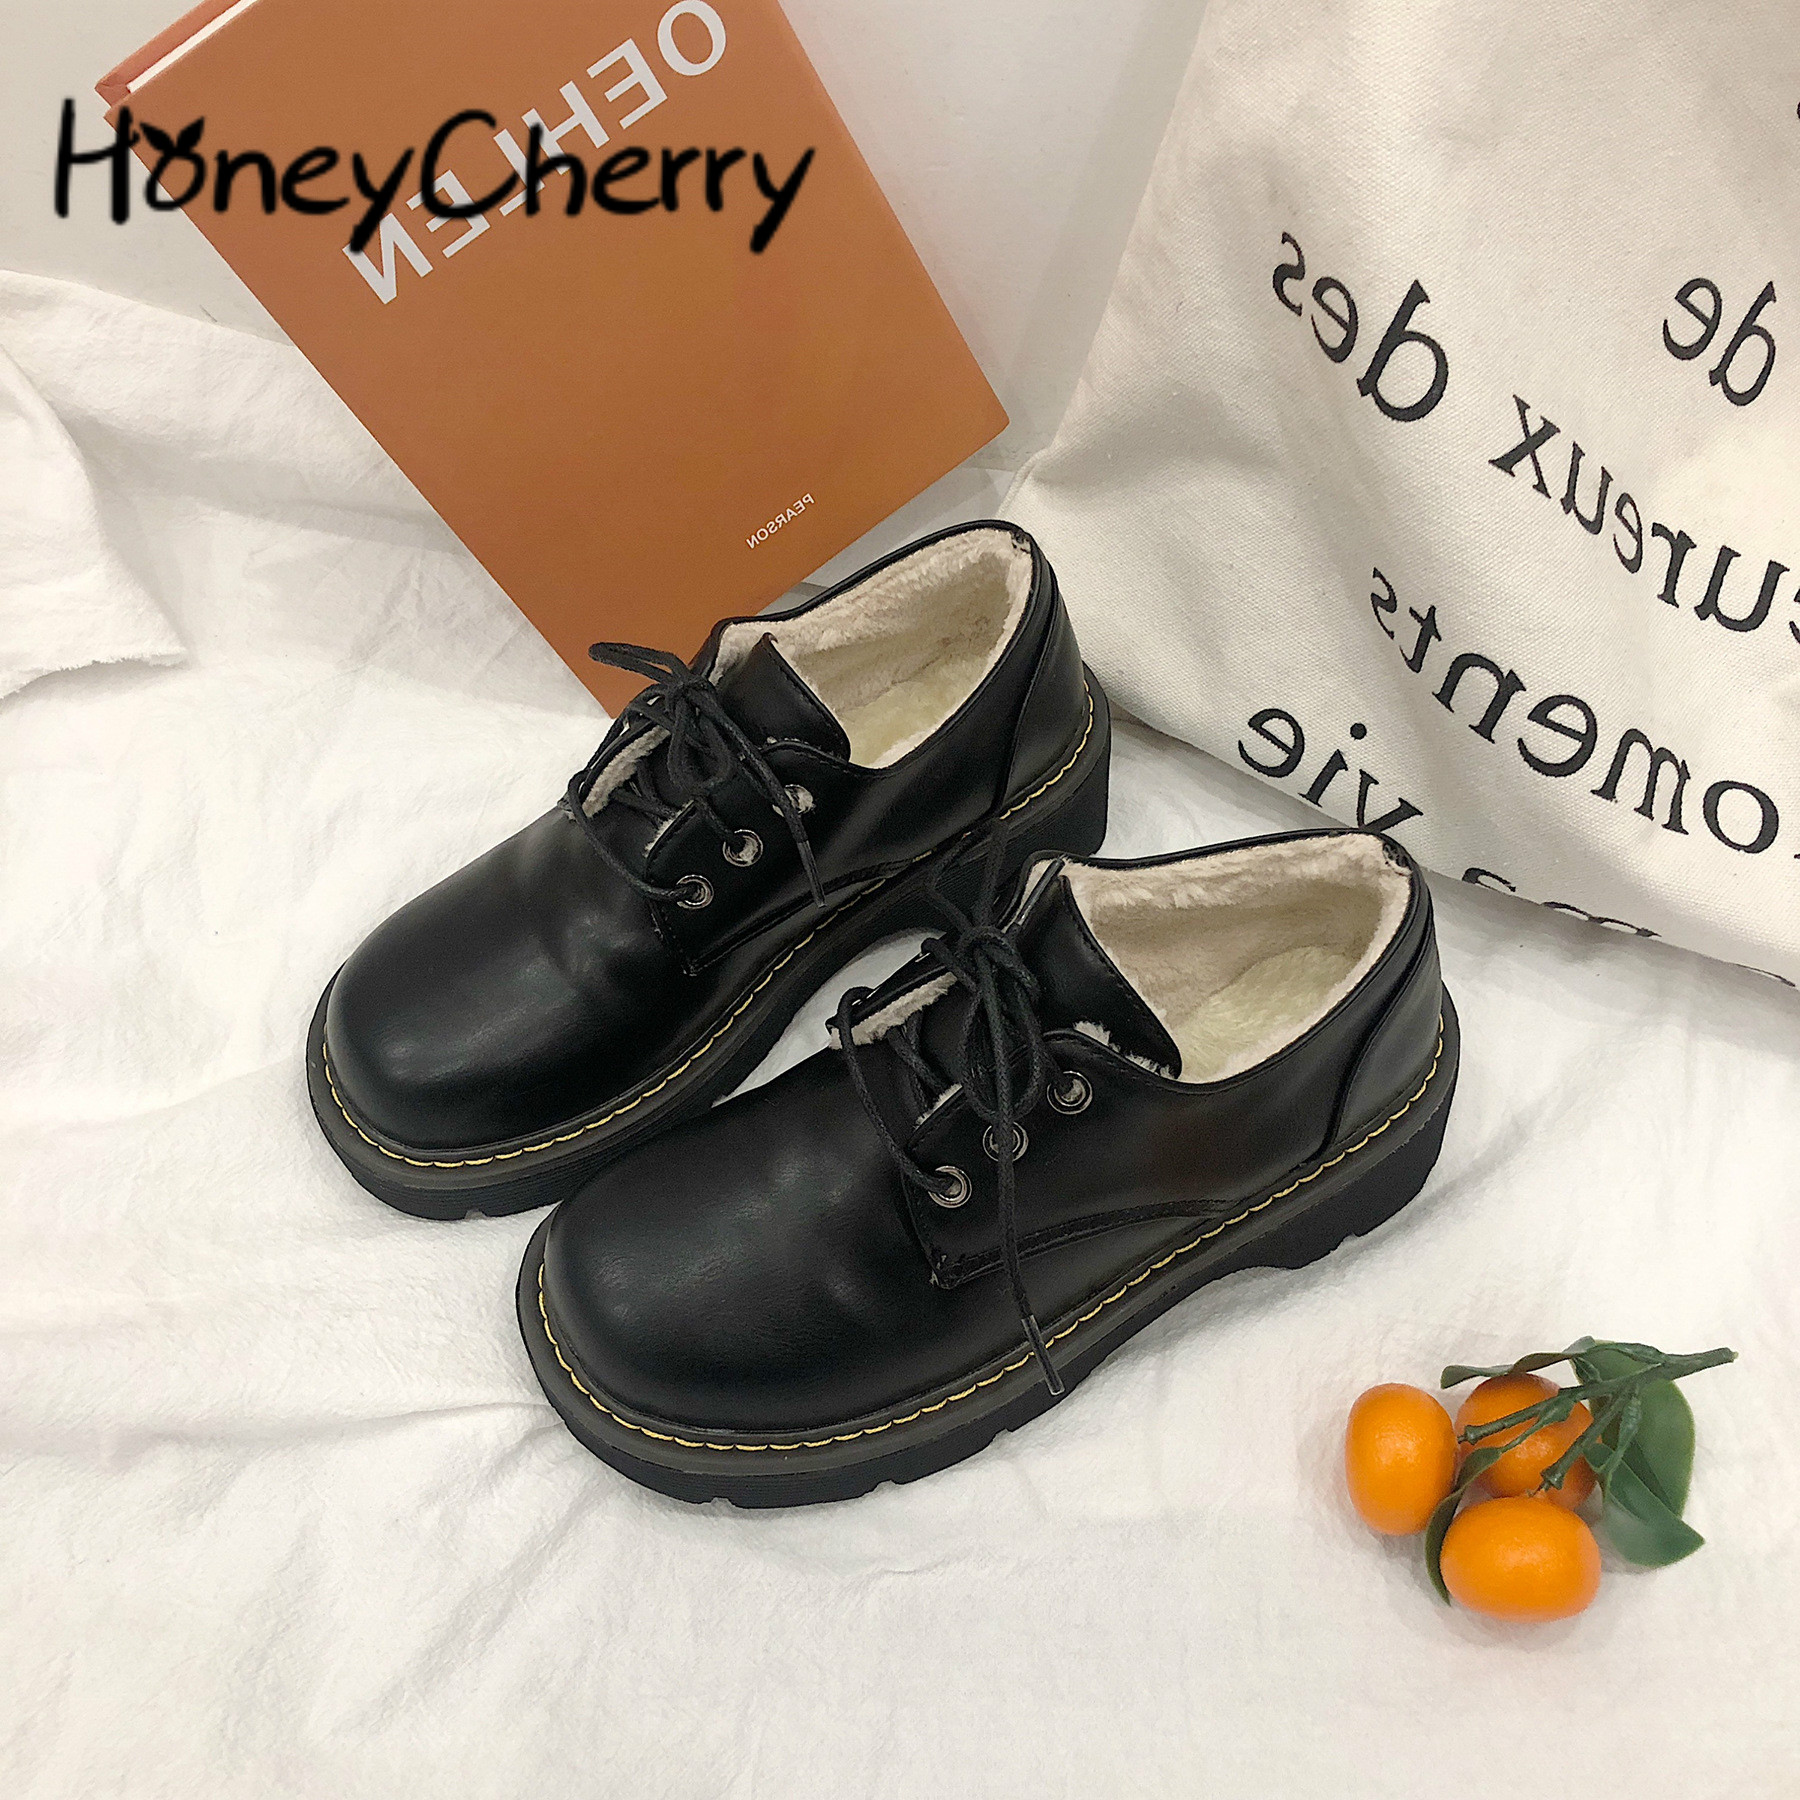 2018 Style 39 Collège Anglais Fond Taille Chaussures IxOwvaSa